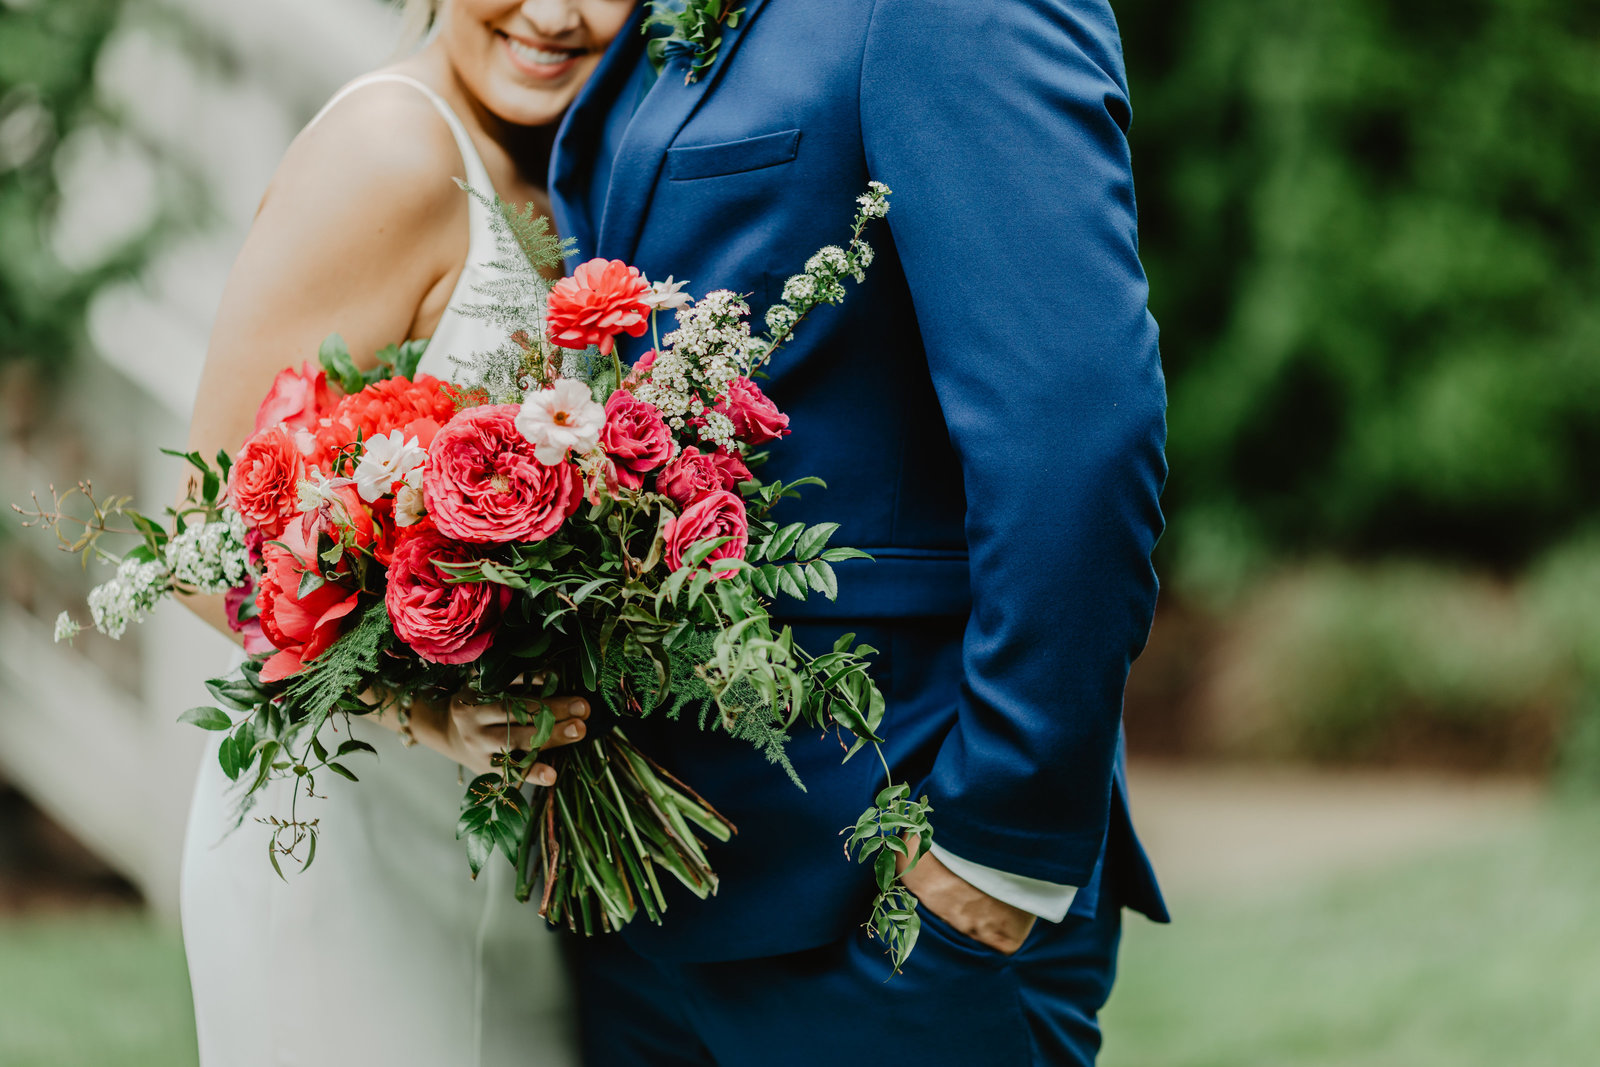 With lush pinks and green this bouquet in the hands of the bride were perfect contrast to the grooms blue suit at the Cordell